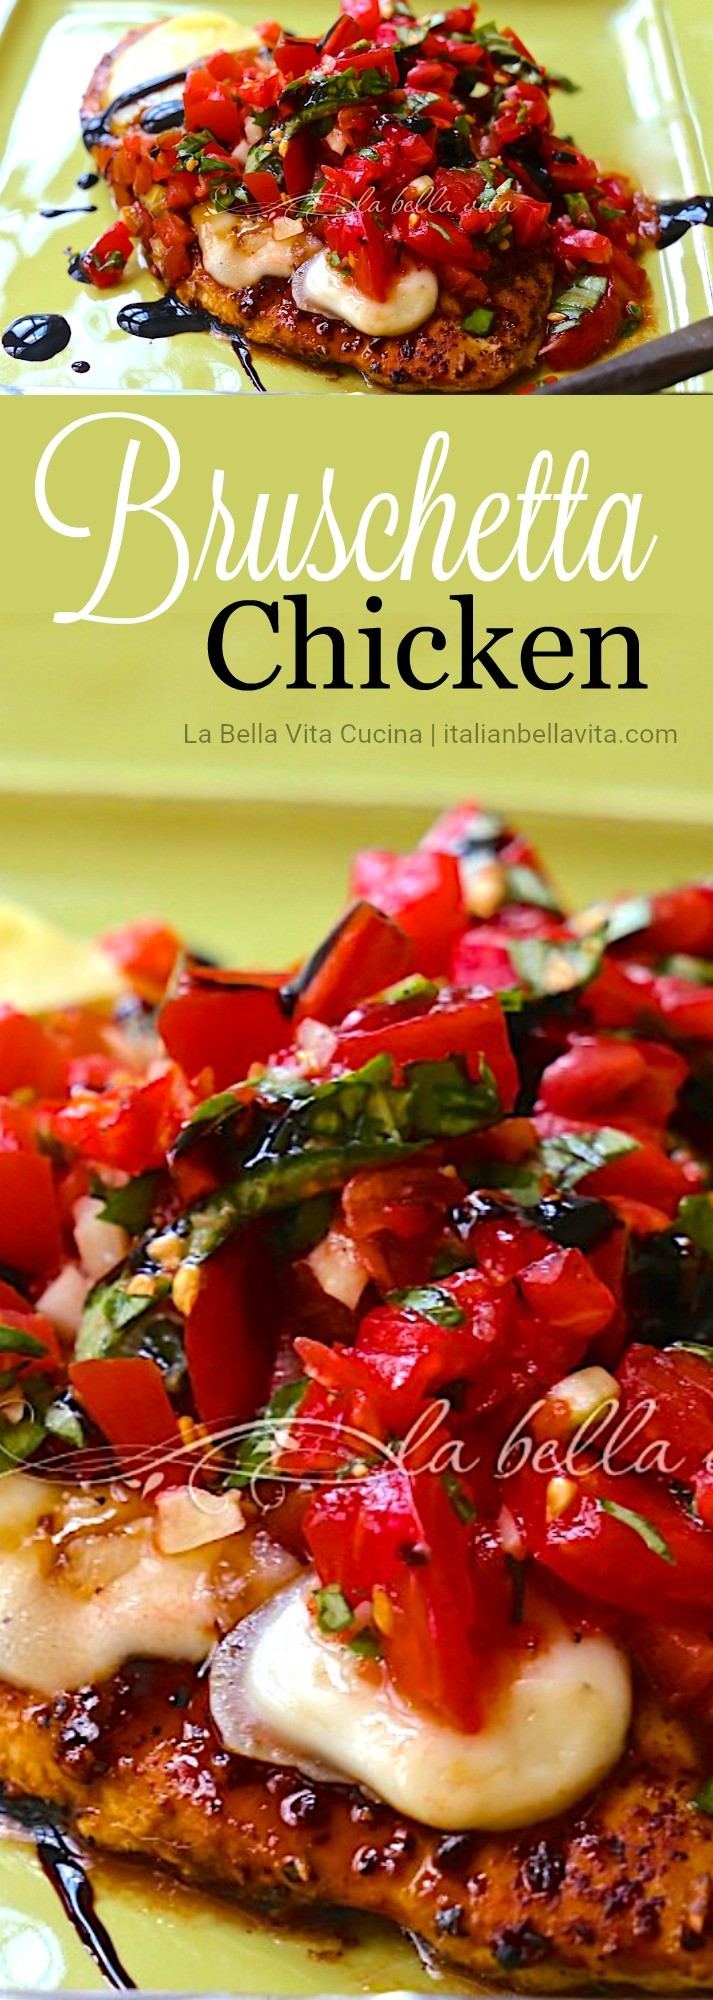 Italian Bruschetta Chicken